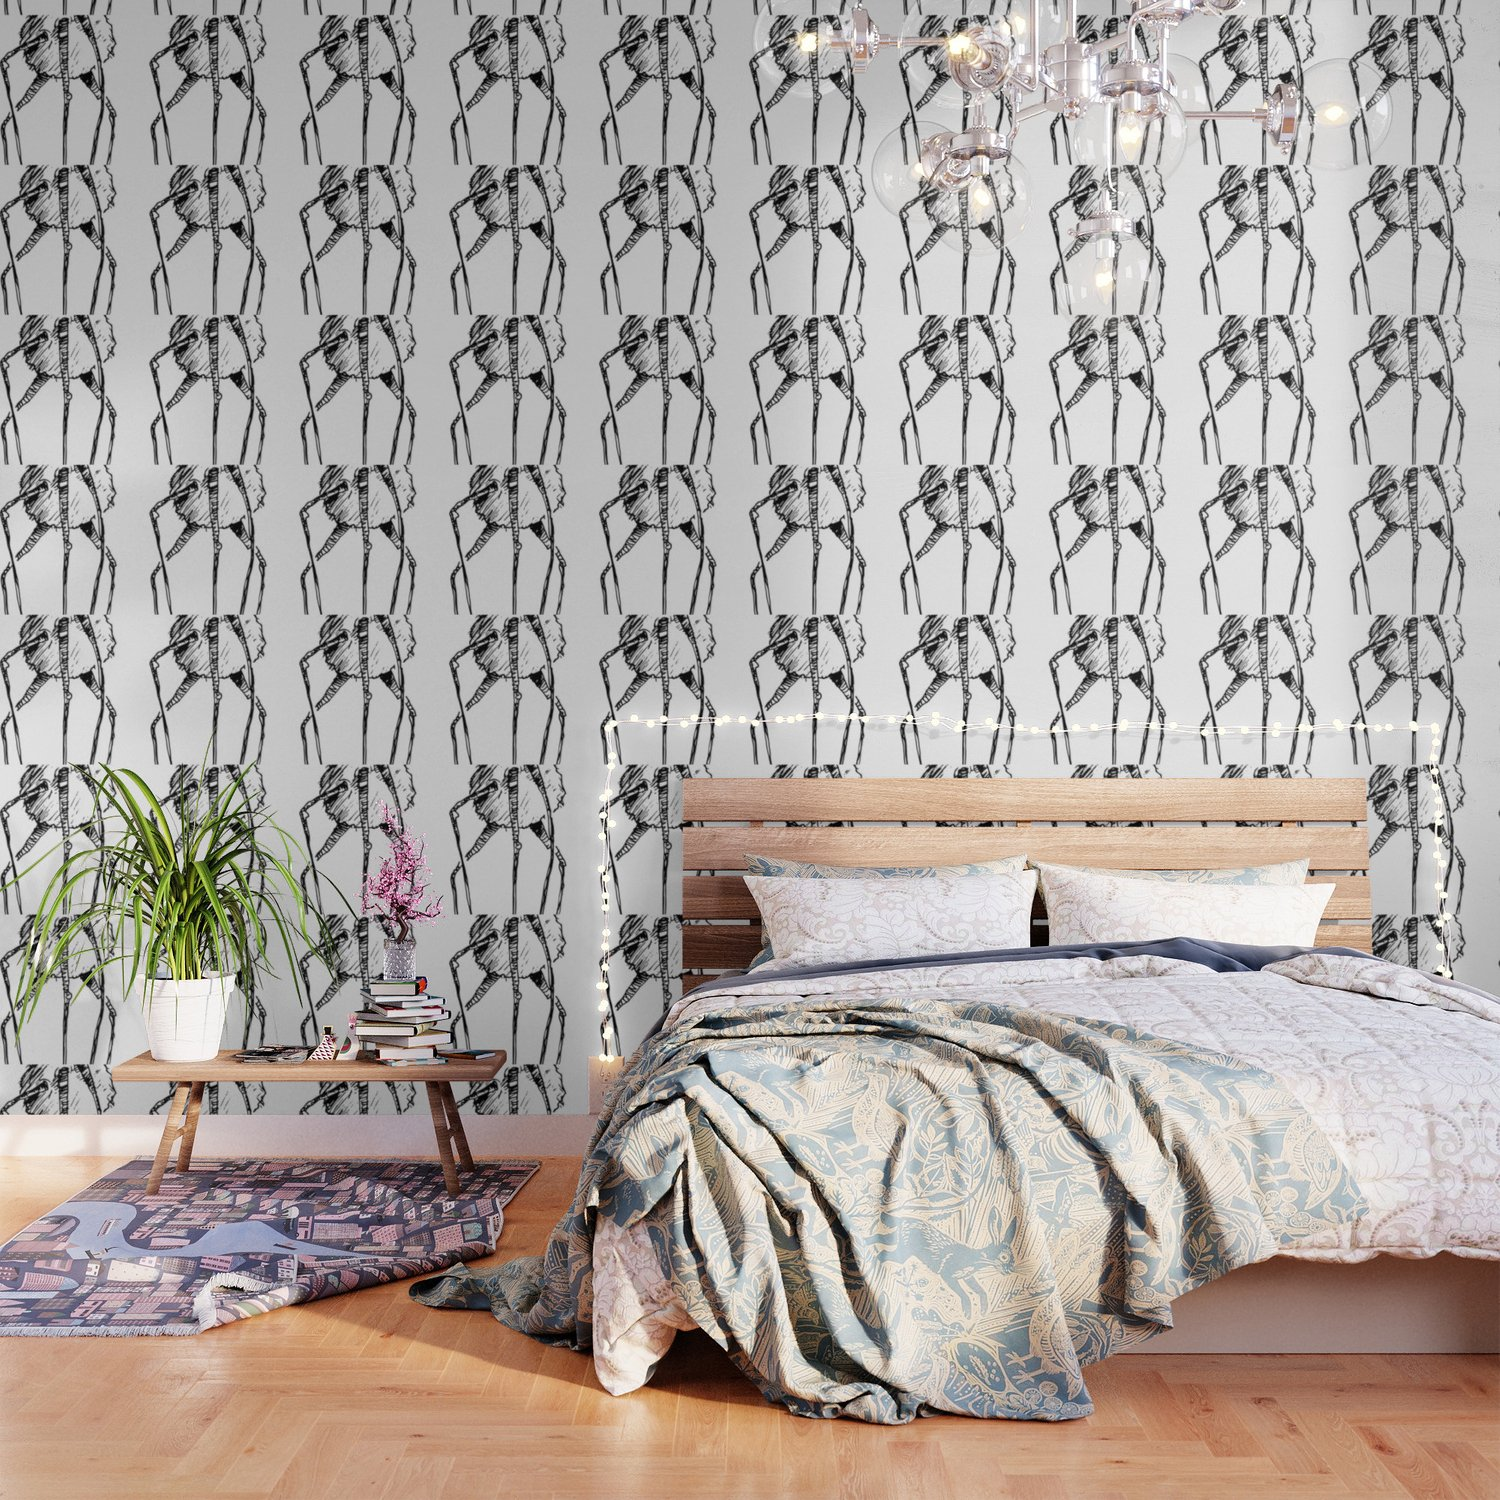 DOODLE FANCY WEIRDO Wallpaper by losthouse Society6 1500x1500